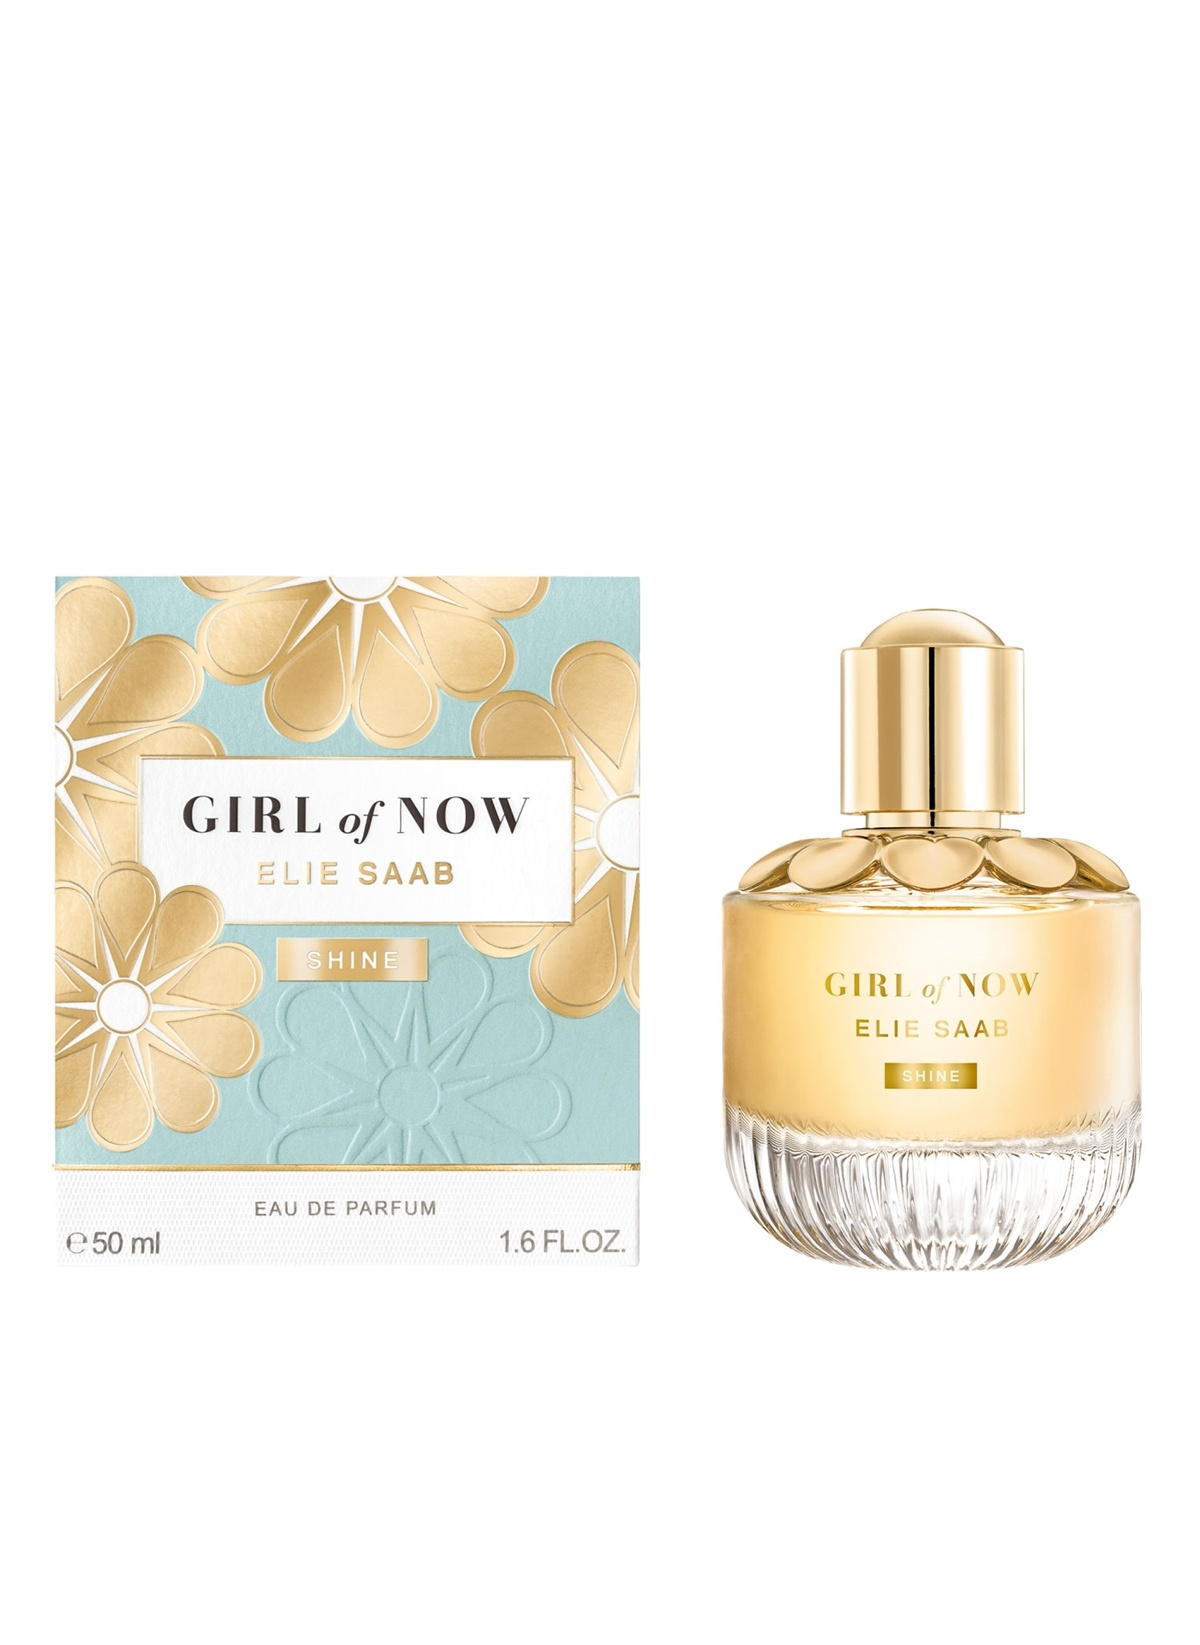 Kadın Elie Saab Girl Of Now Shine Edp 50Ml Parfüm